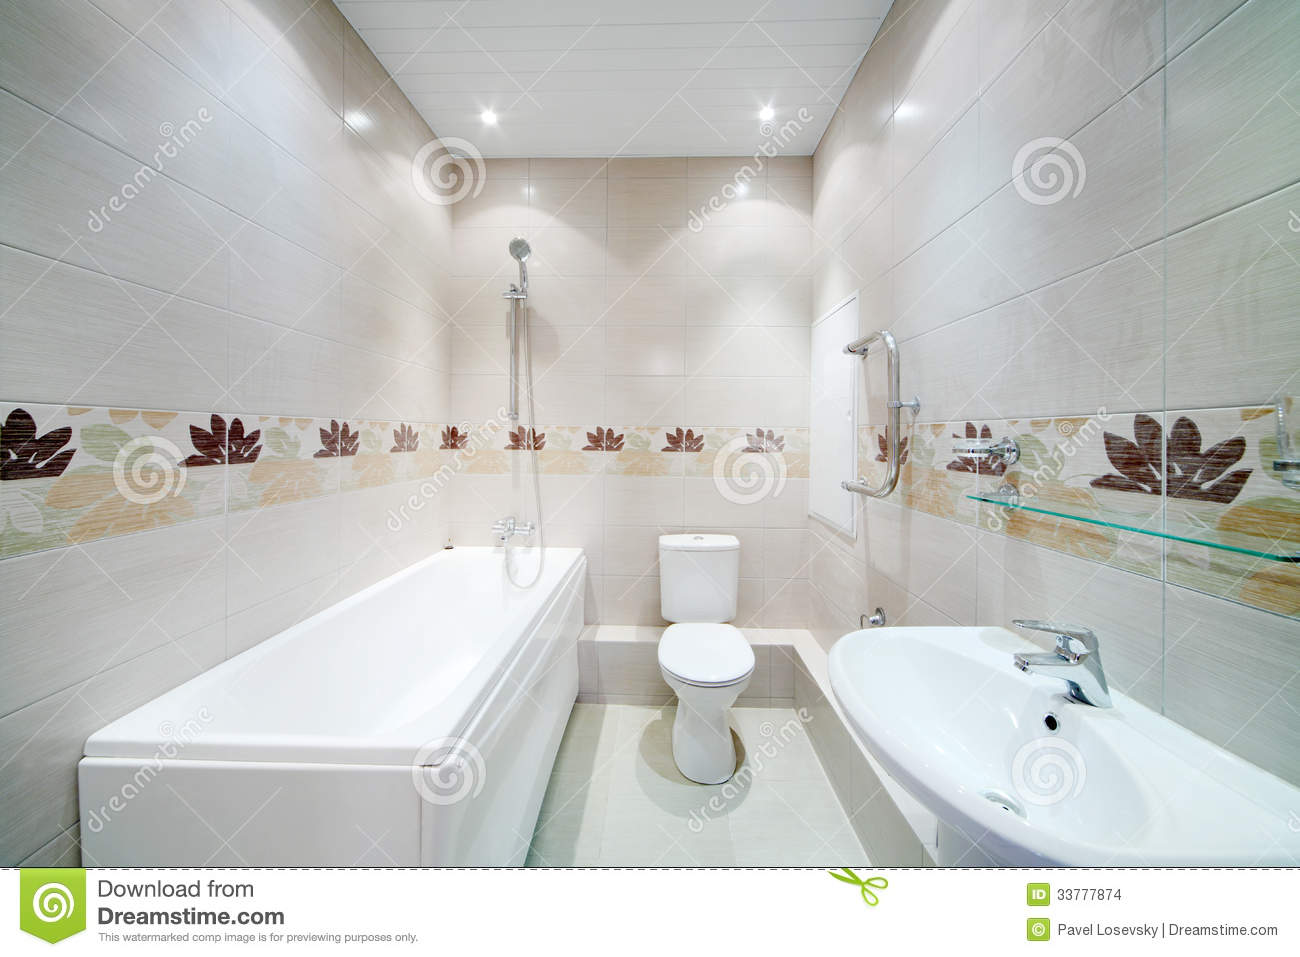 Clean Bathroom With Toilet Simple Grey Tiles Stock